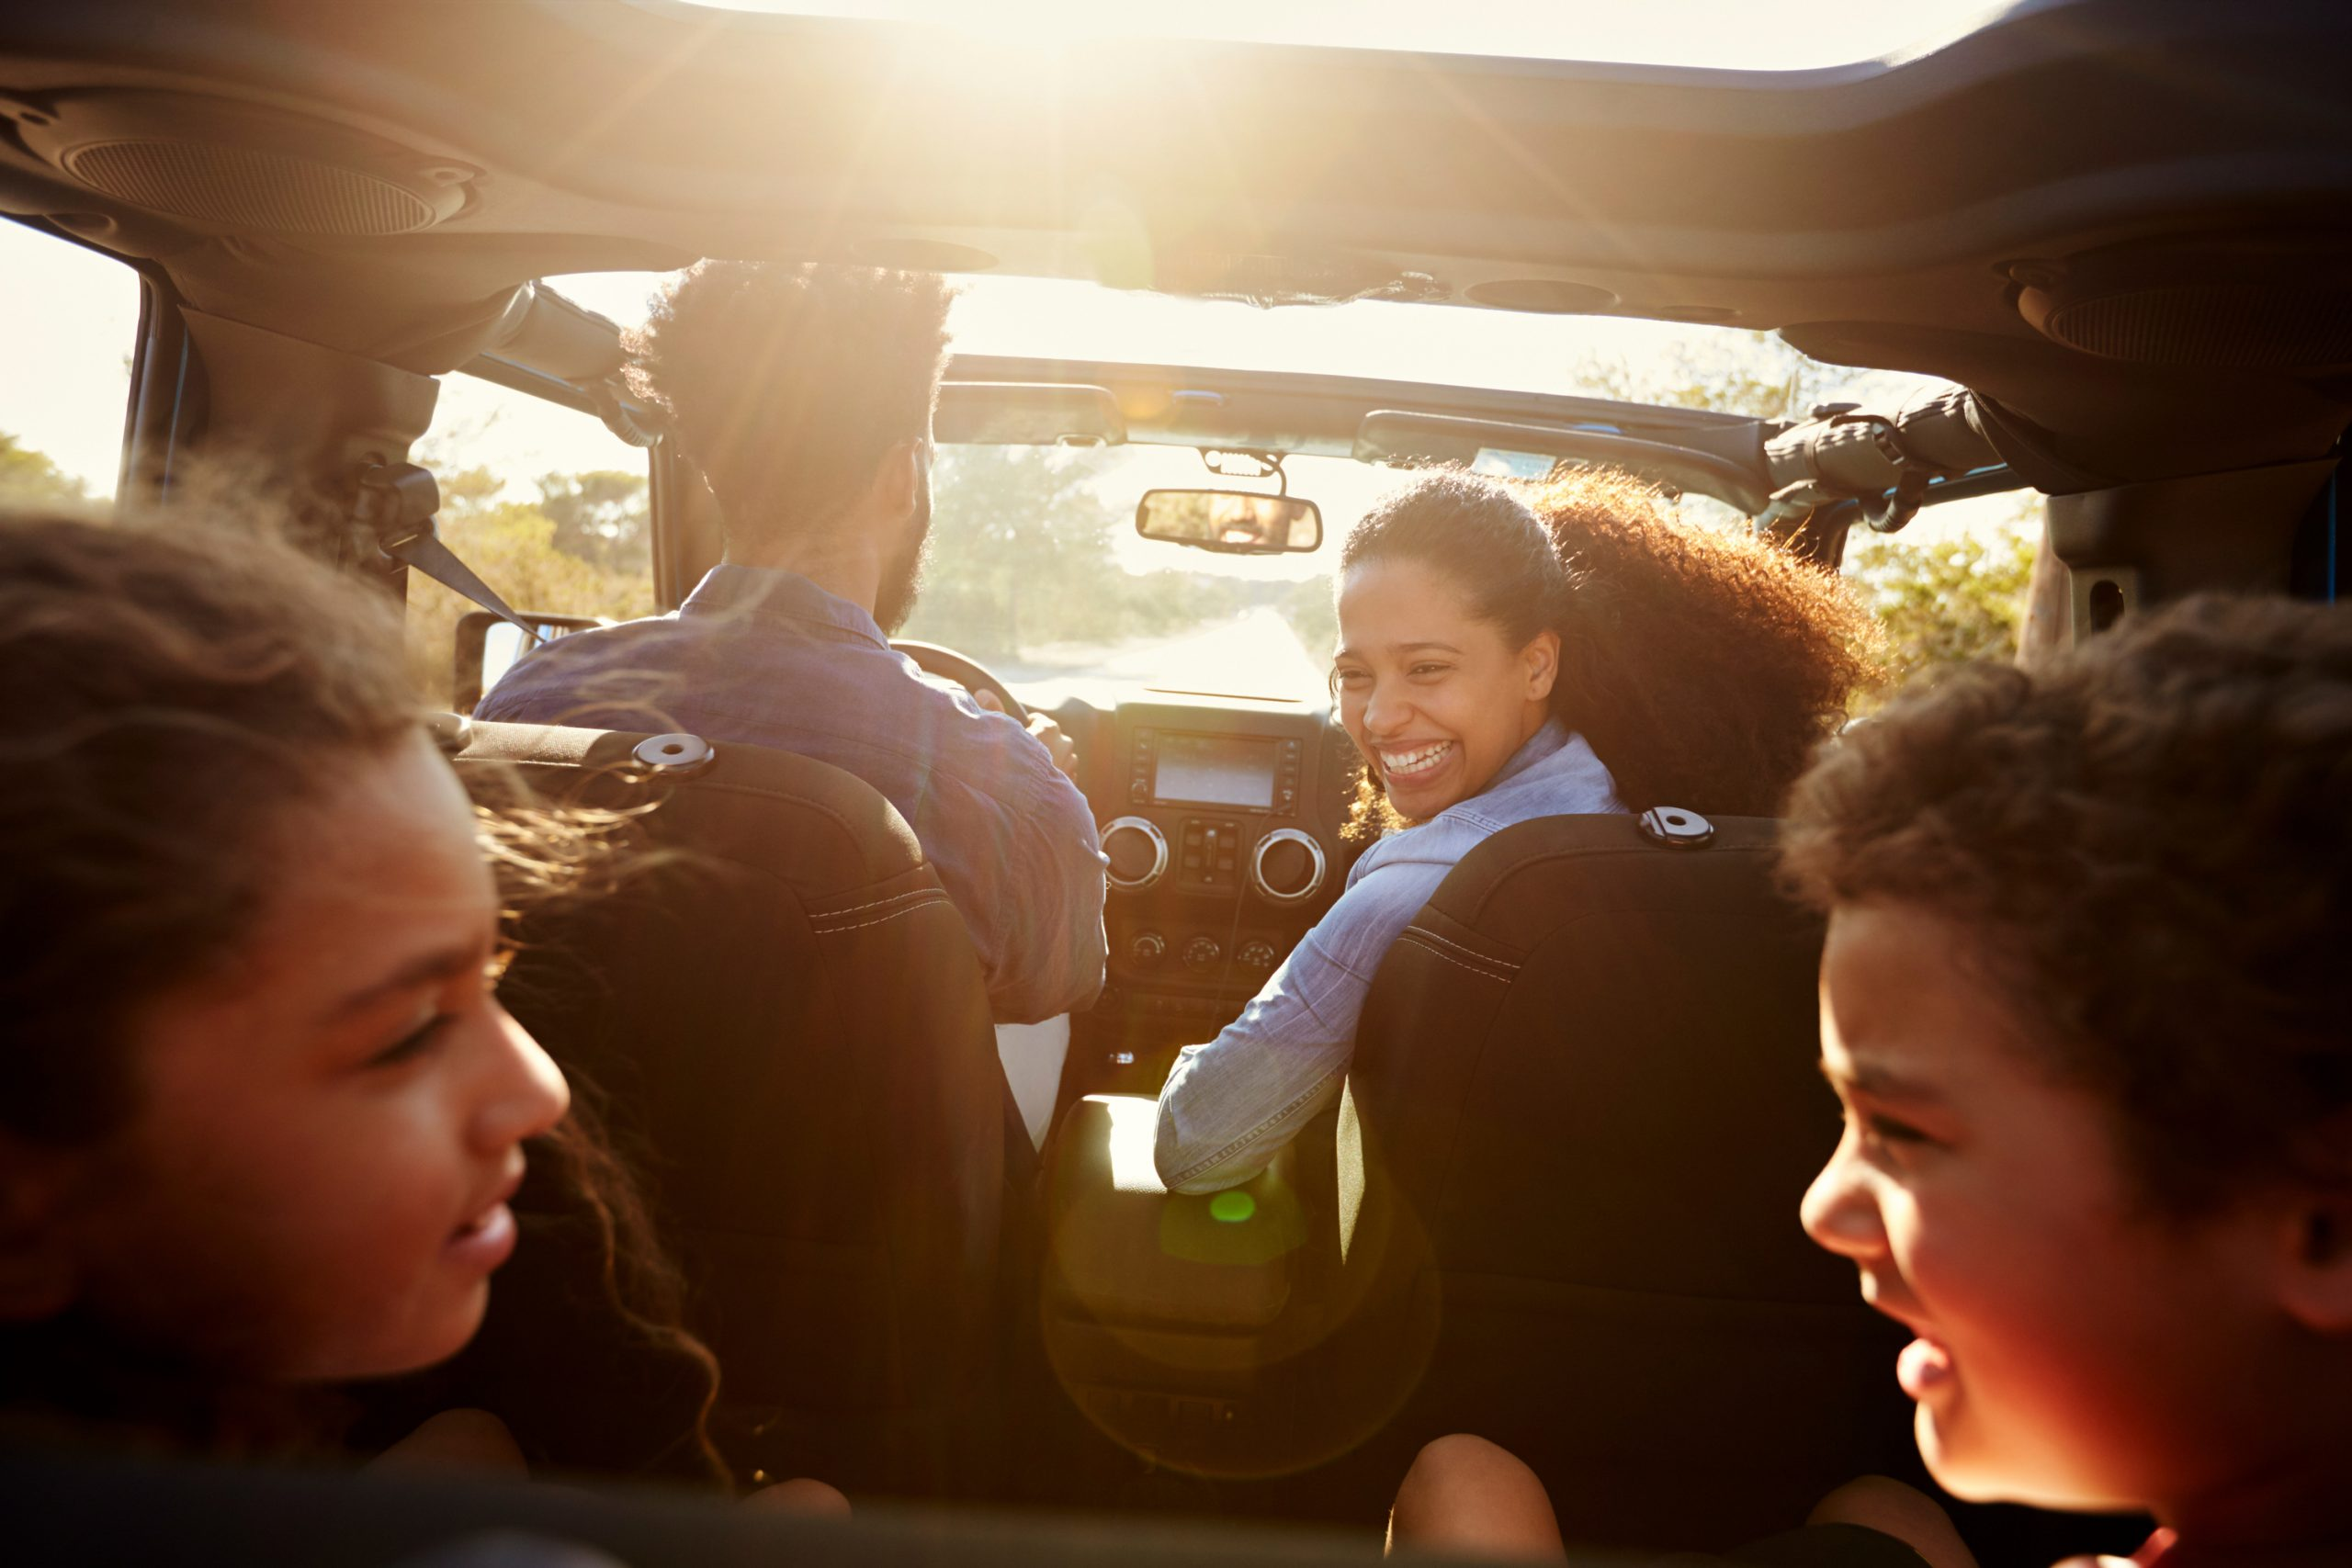 Mom chatting with kids in car. Car hacks for moms.